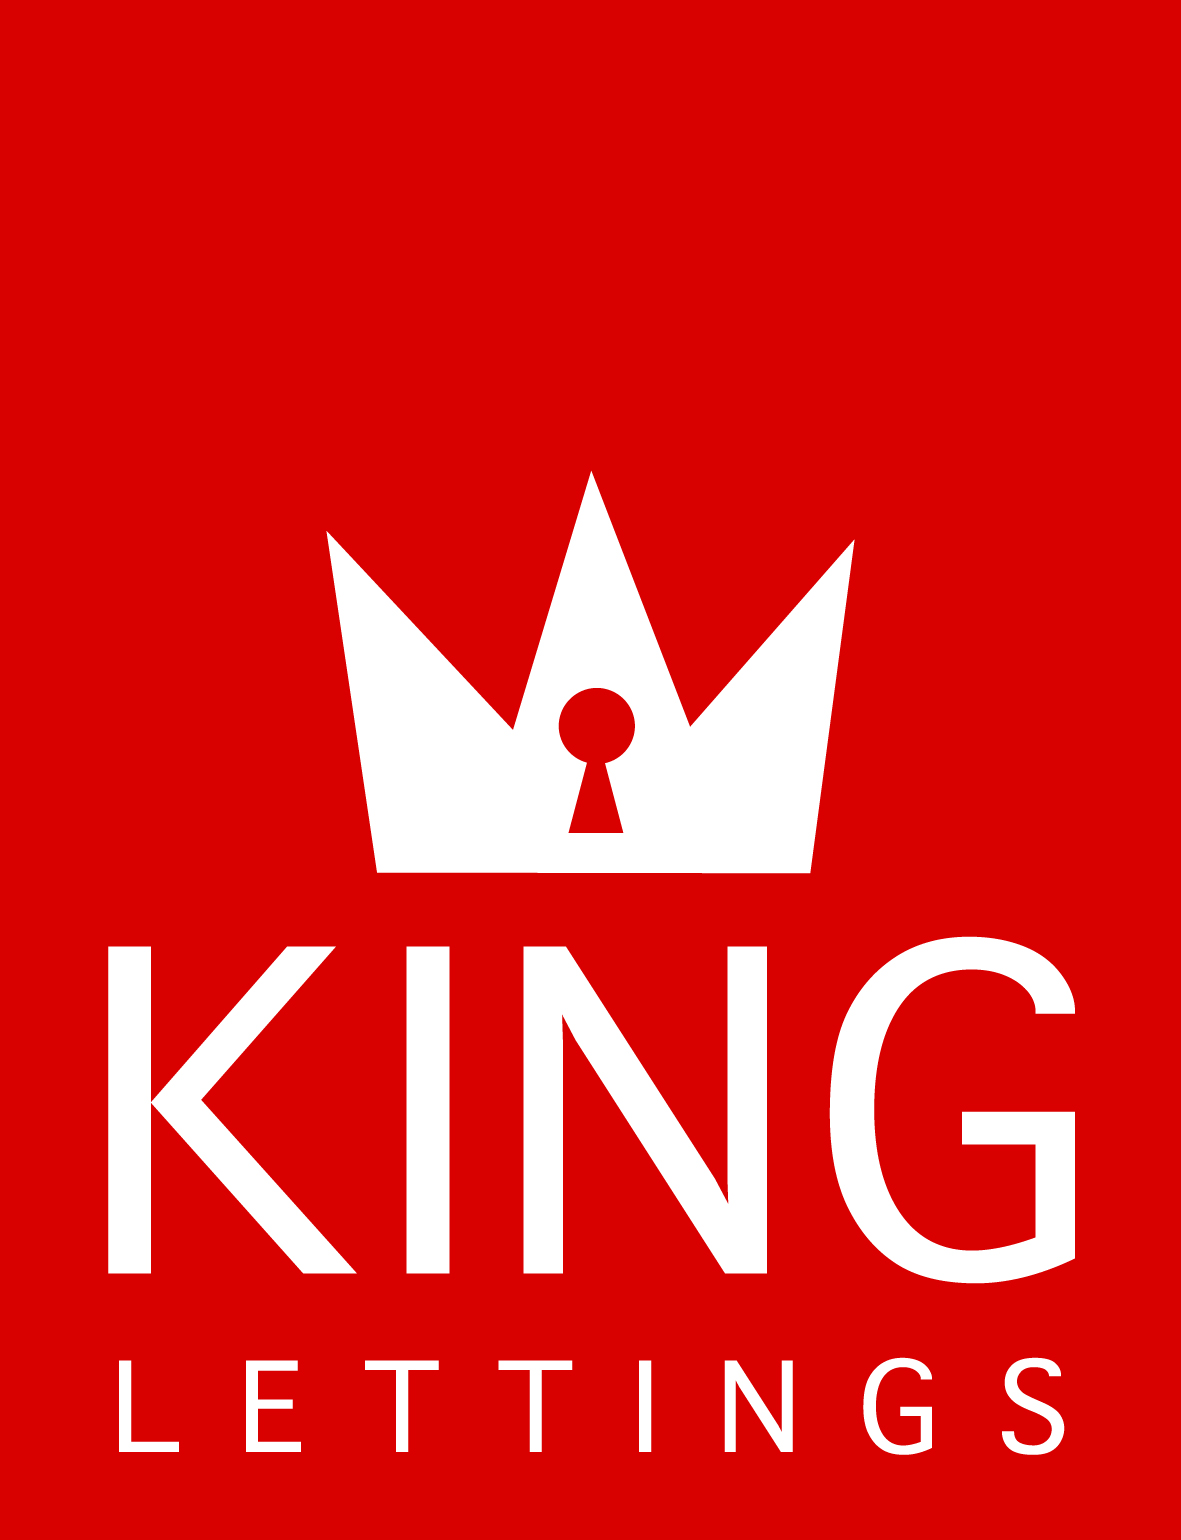 King Lettings